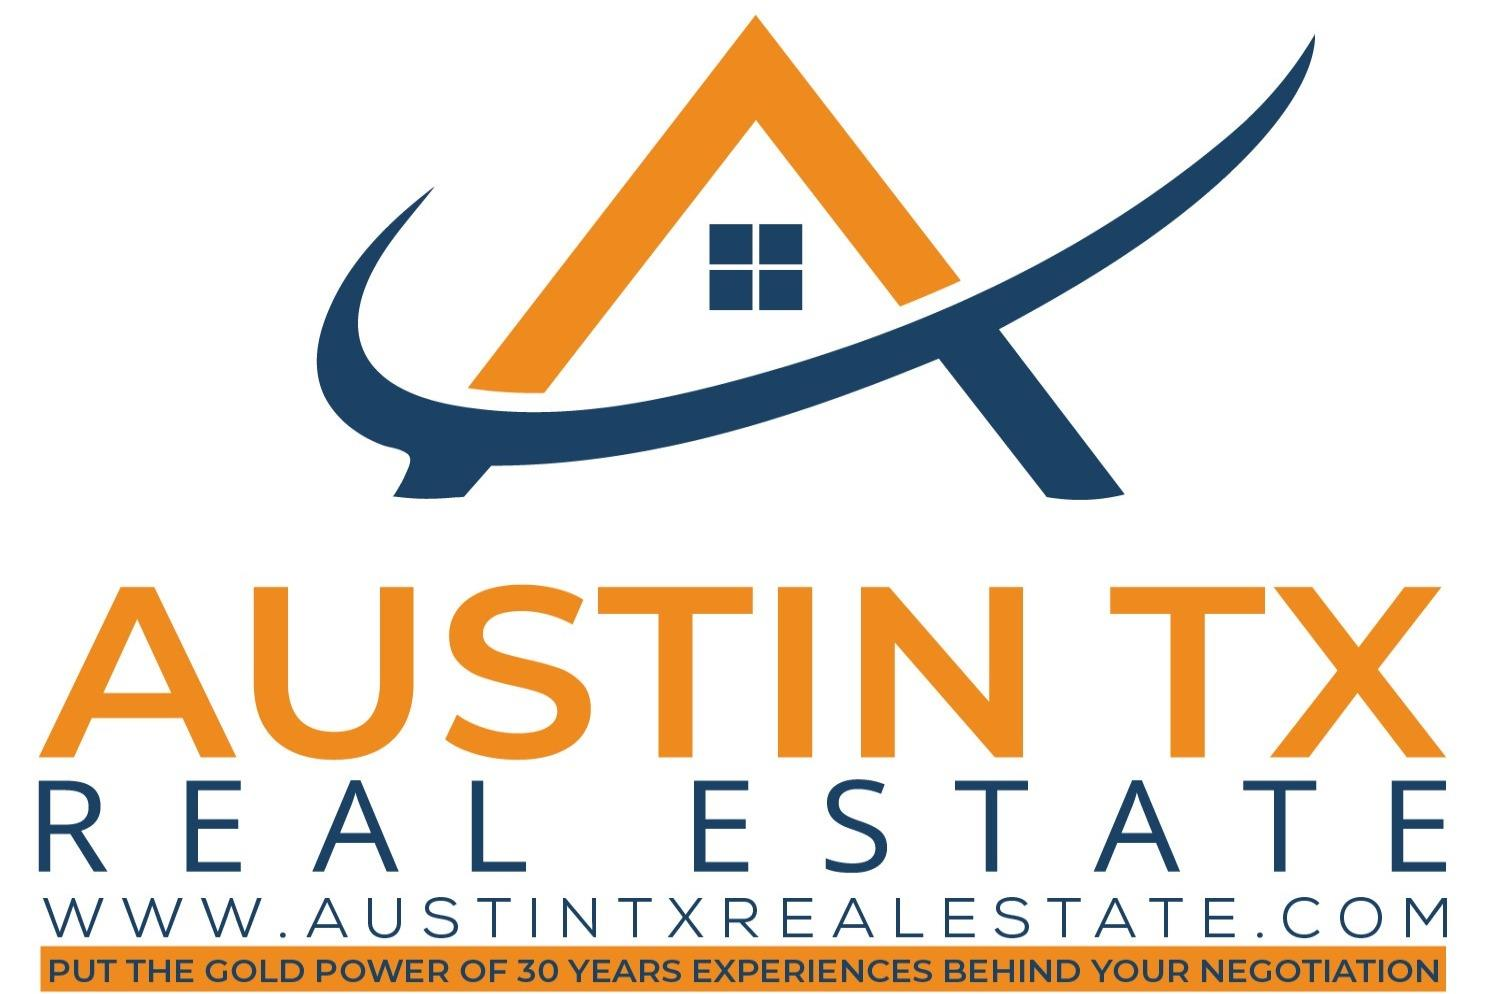 Austin TX Real Estate